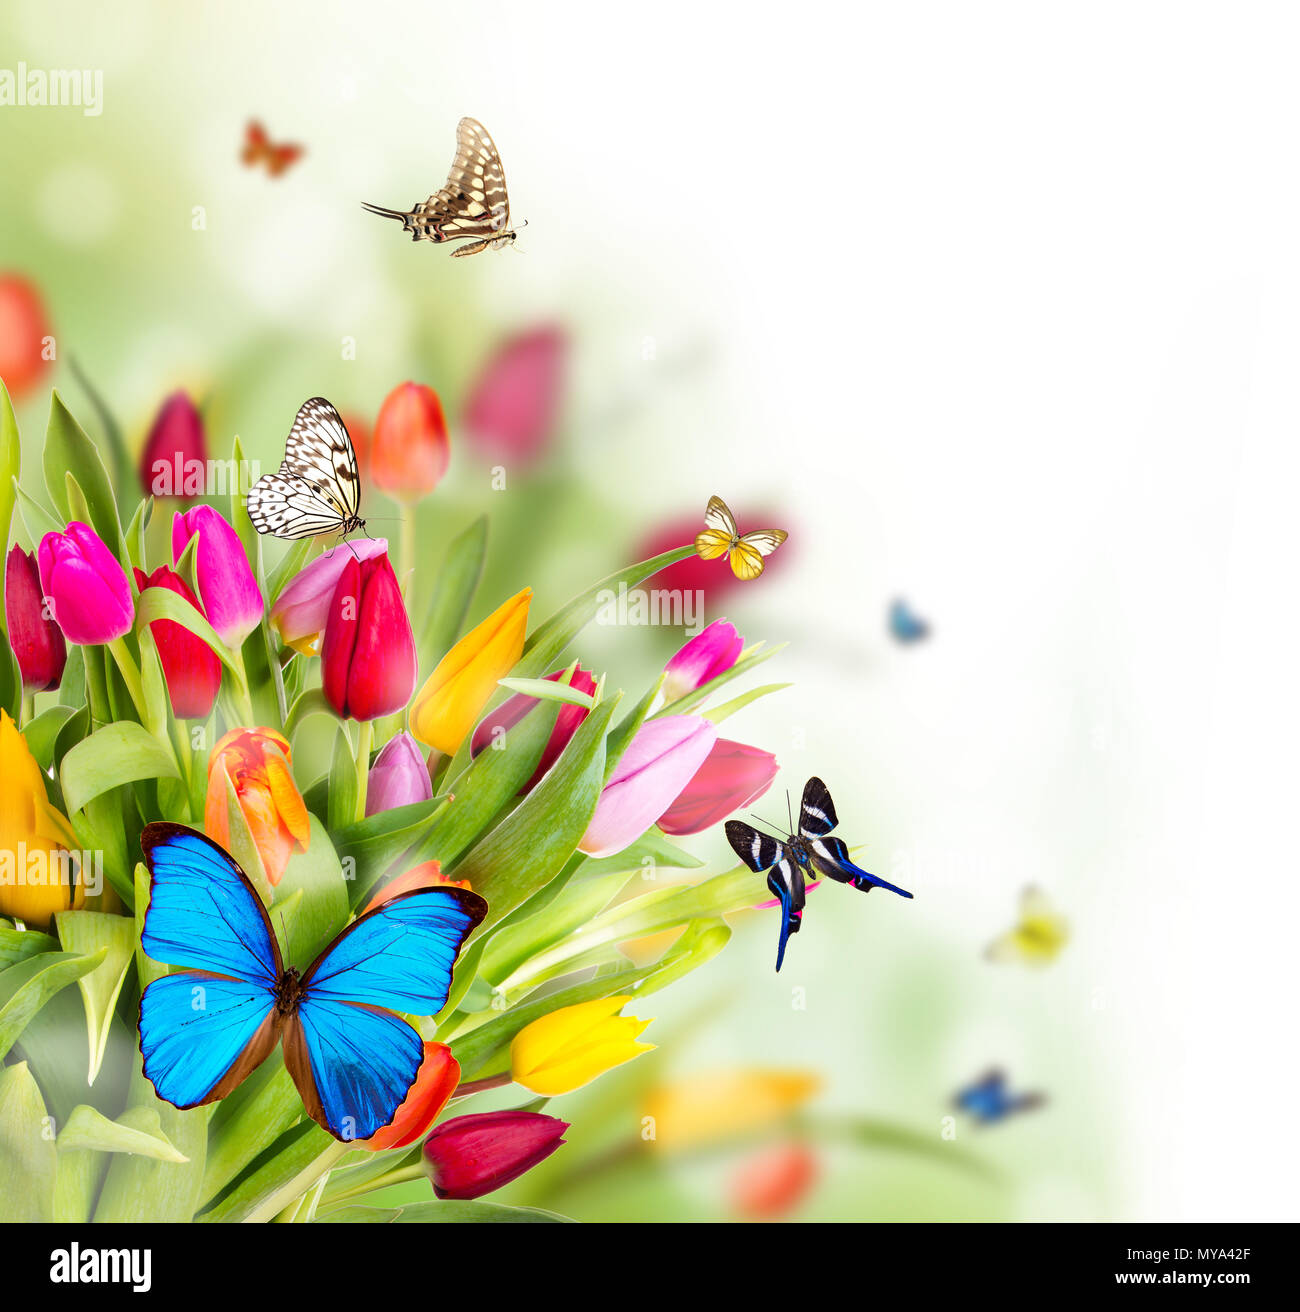 Spring, Nature, Flower Butterfly Floral Background Summer